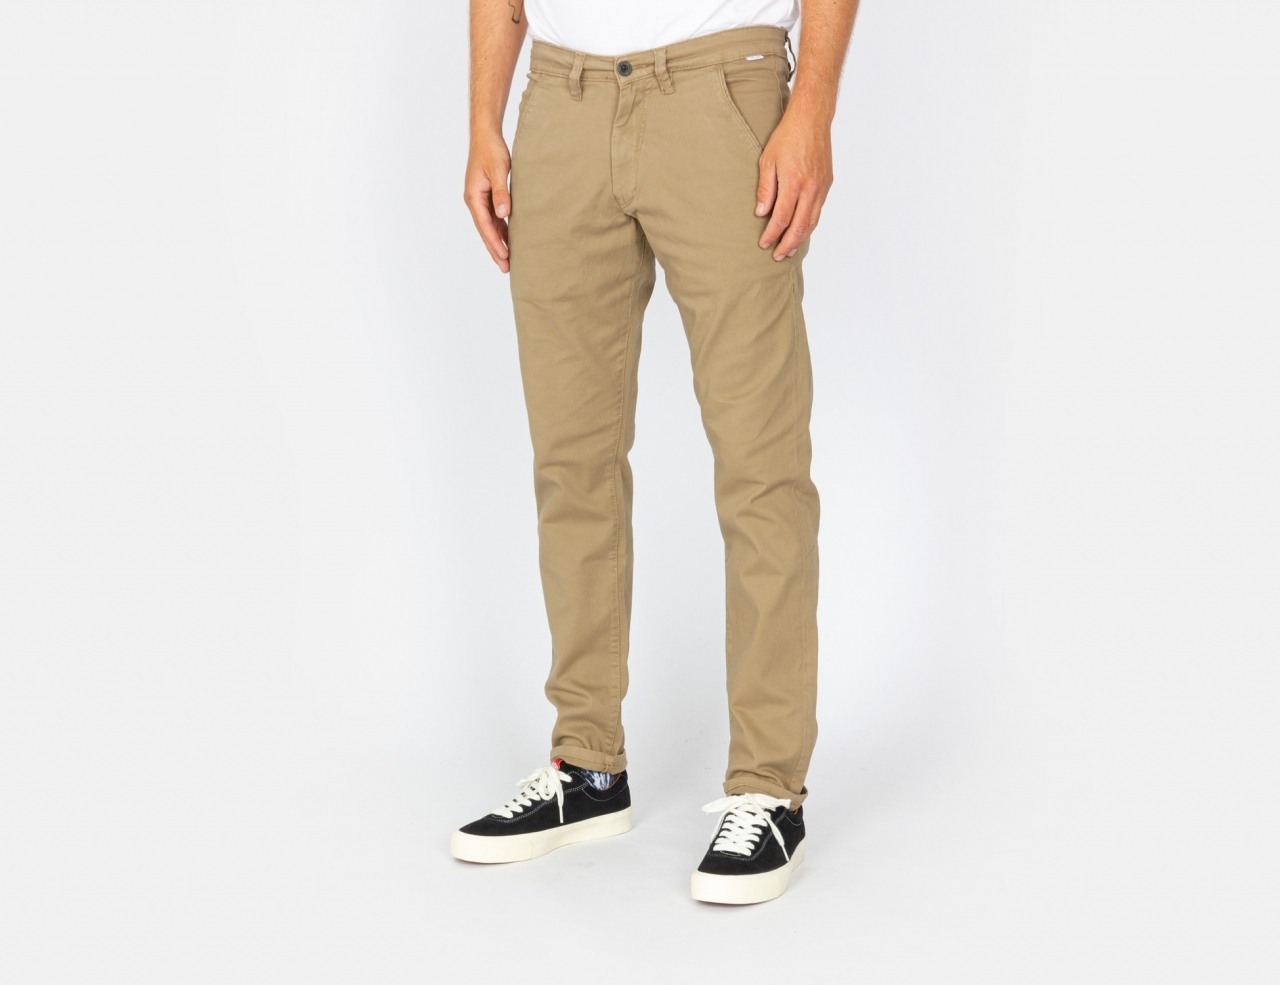 Reell Jeans Flex Tapered Chino